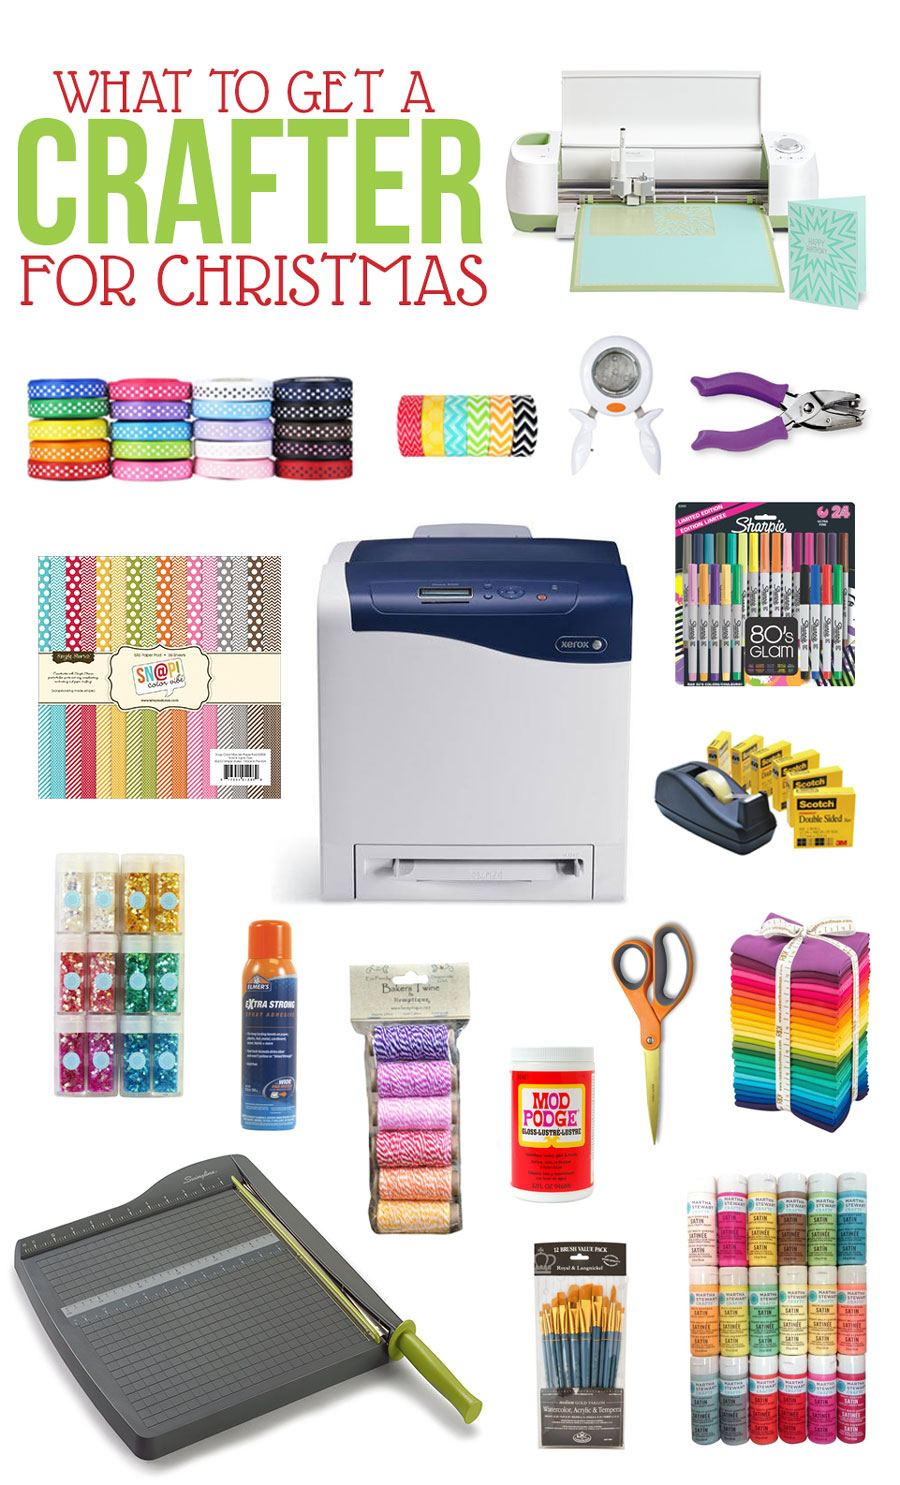 Best Gifts for Crafters 2014